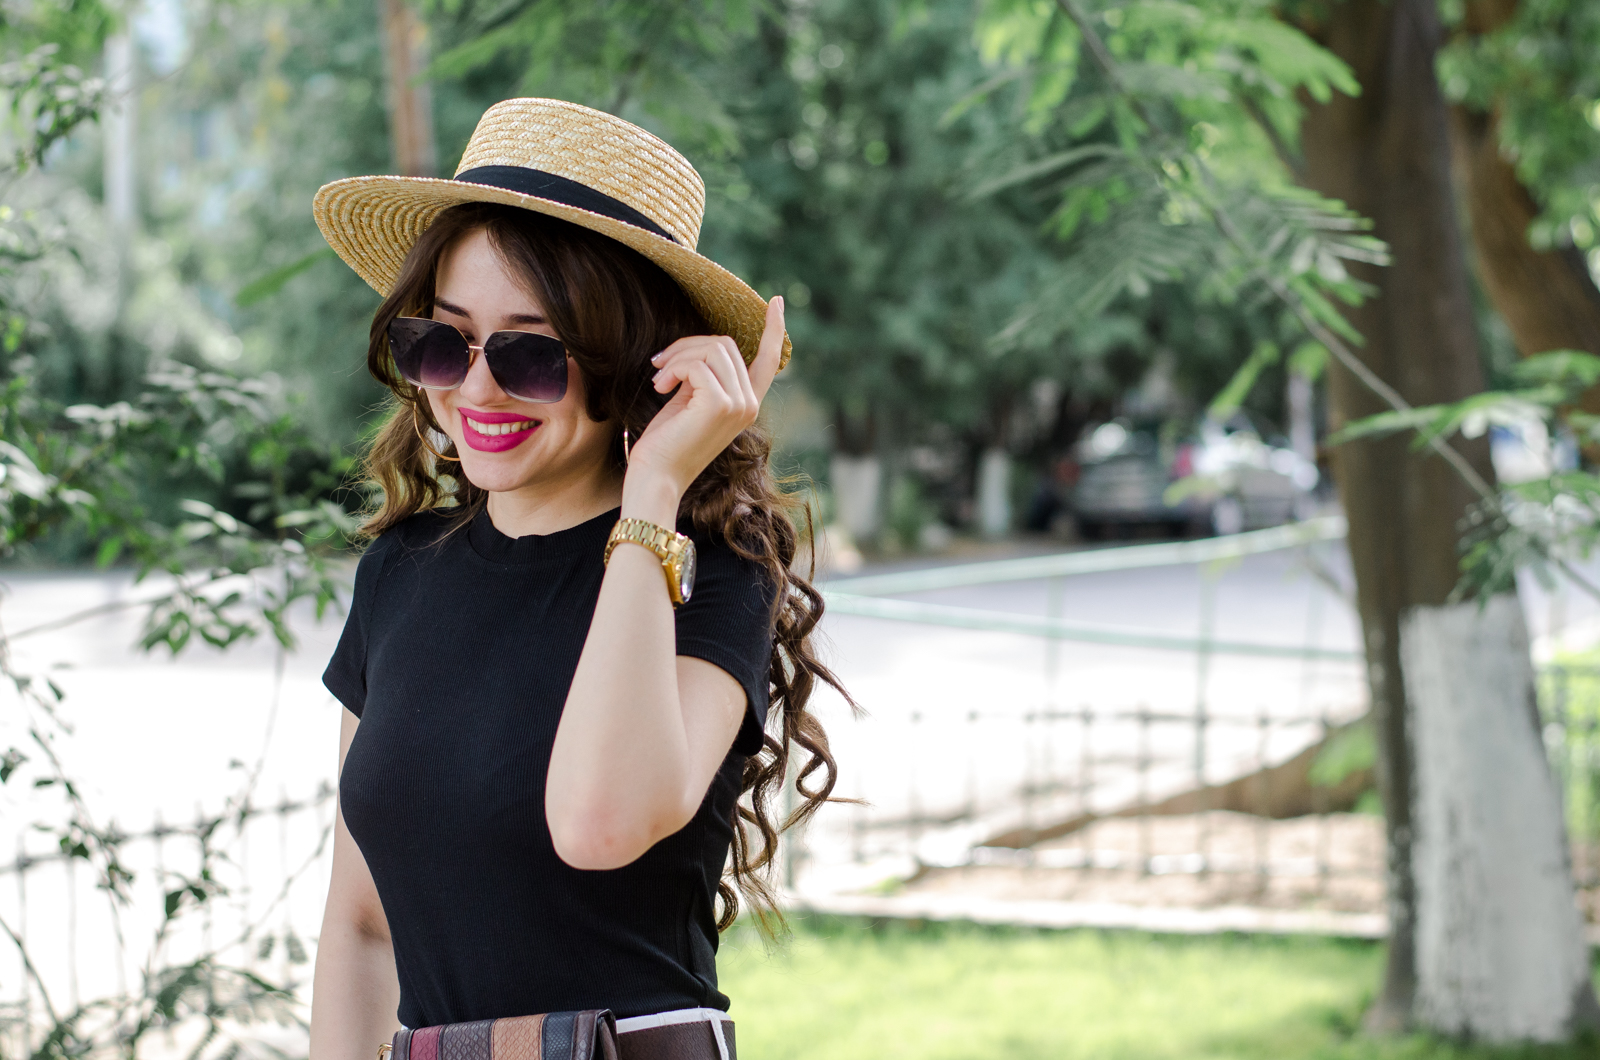 fashion blogger diyorasnotes diyora beta white wide leg trousers straw hat asos casual look black top belt bag asos